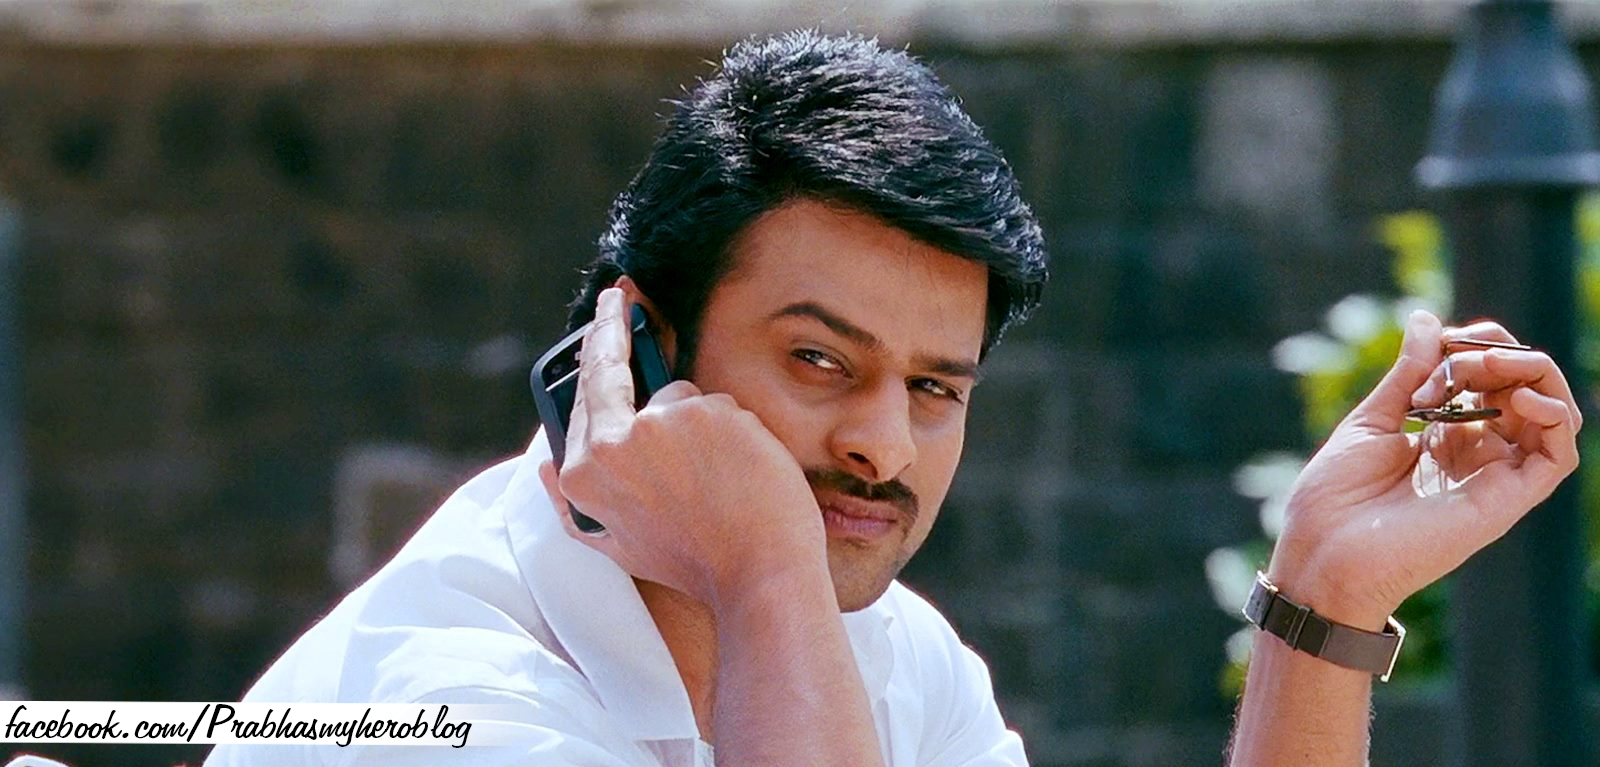 Prabhas To Tie The Knot After Baahubali 2: 'Baahubali' Star Prabhas To Get Married By End Of 2016